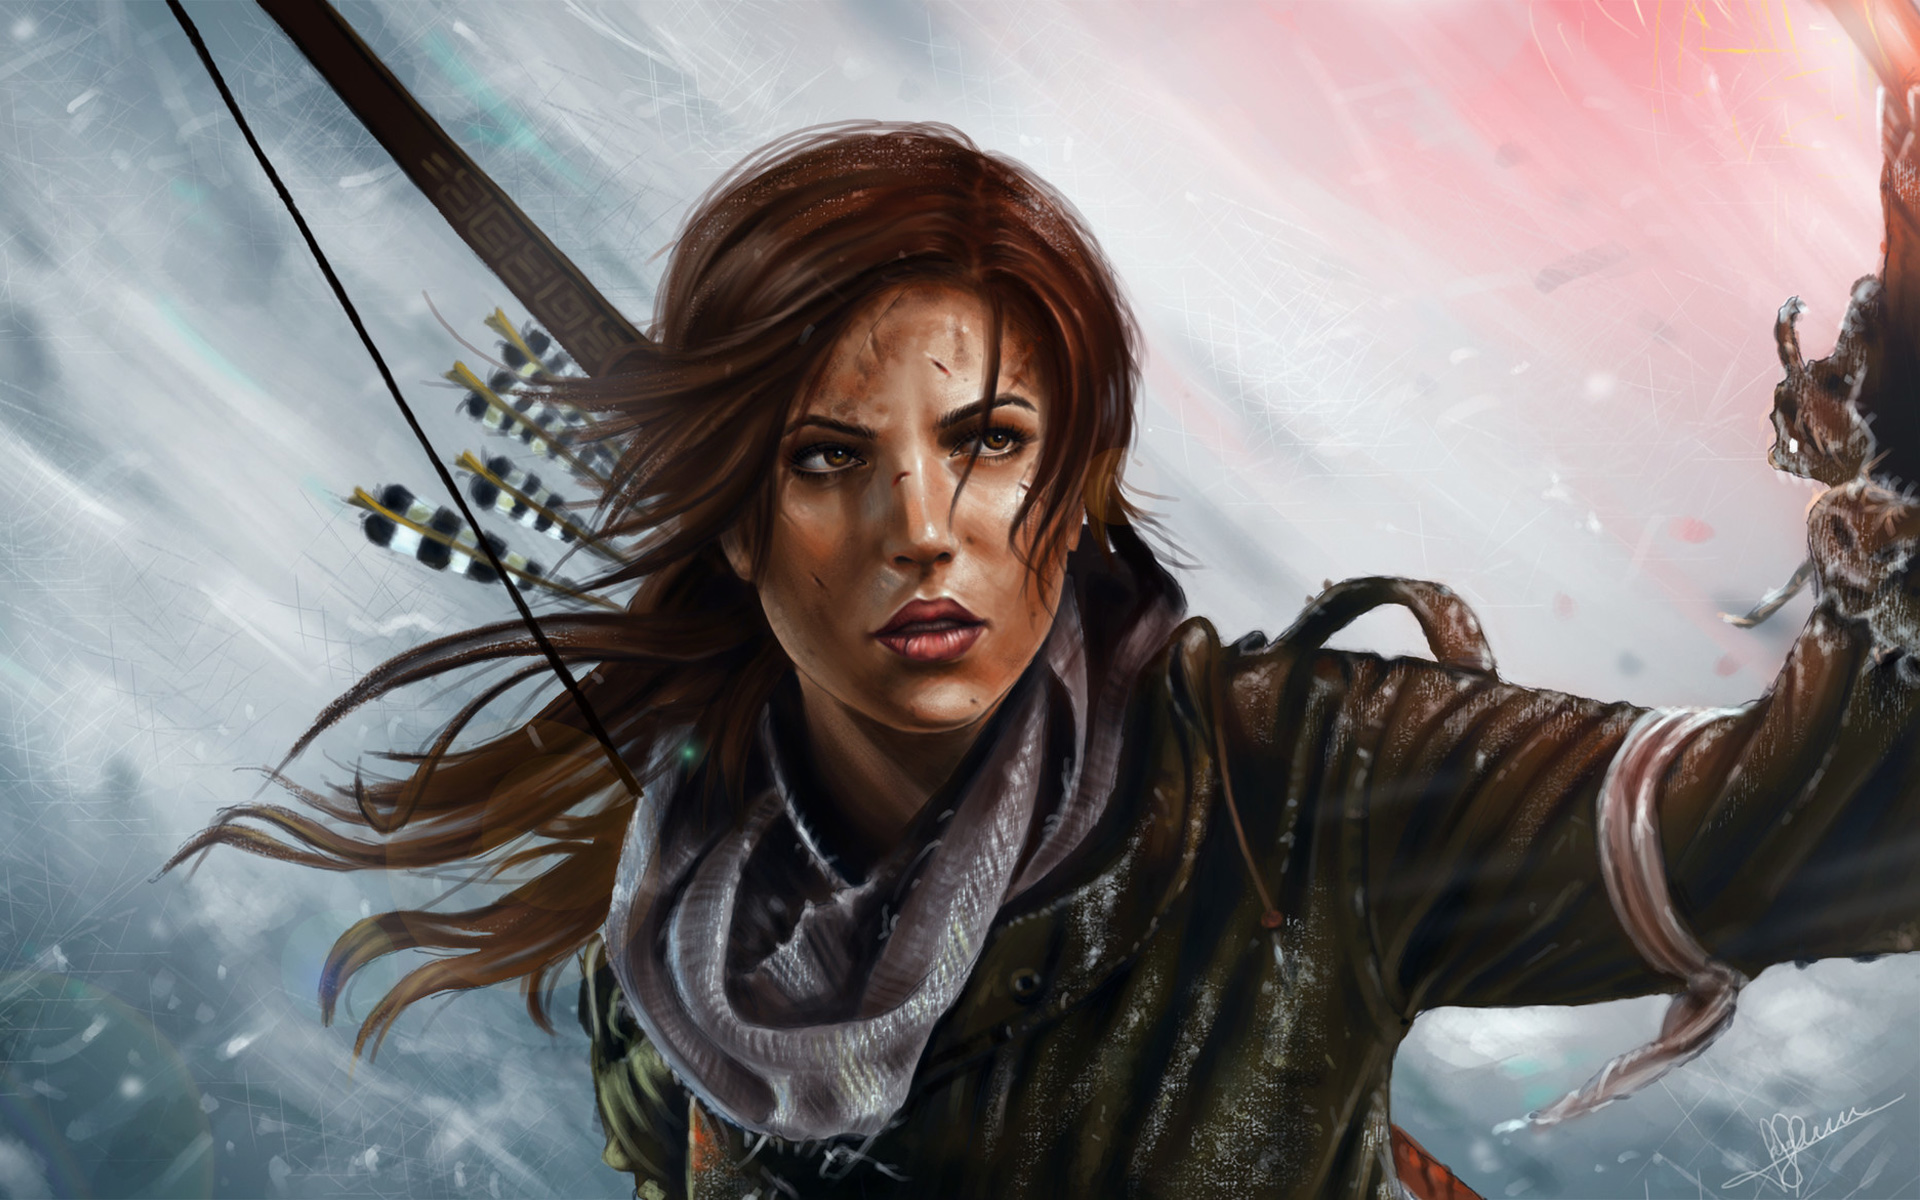 Free Rise of the Tomb Raider Wallpaper in 1920x1200